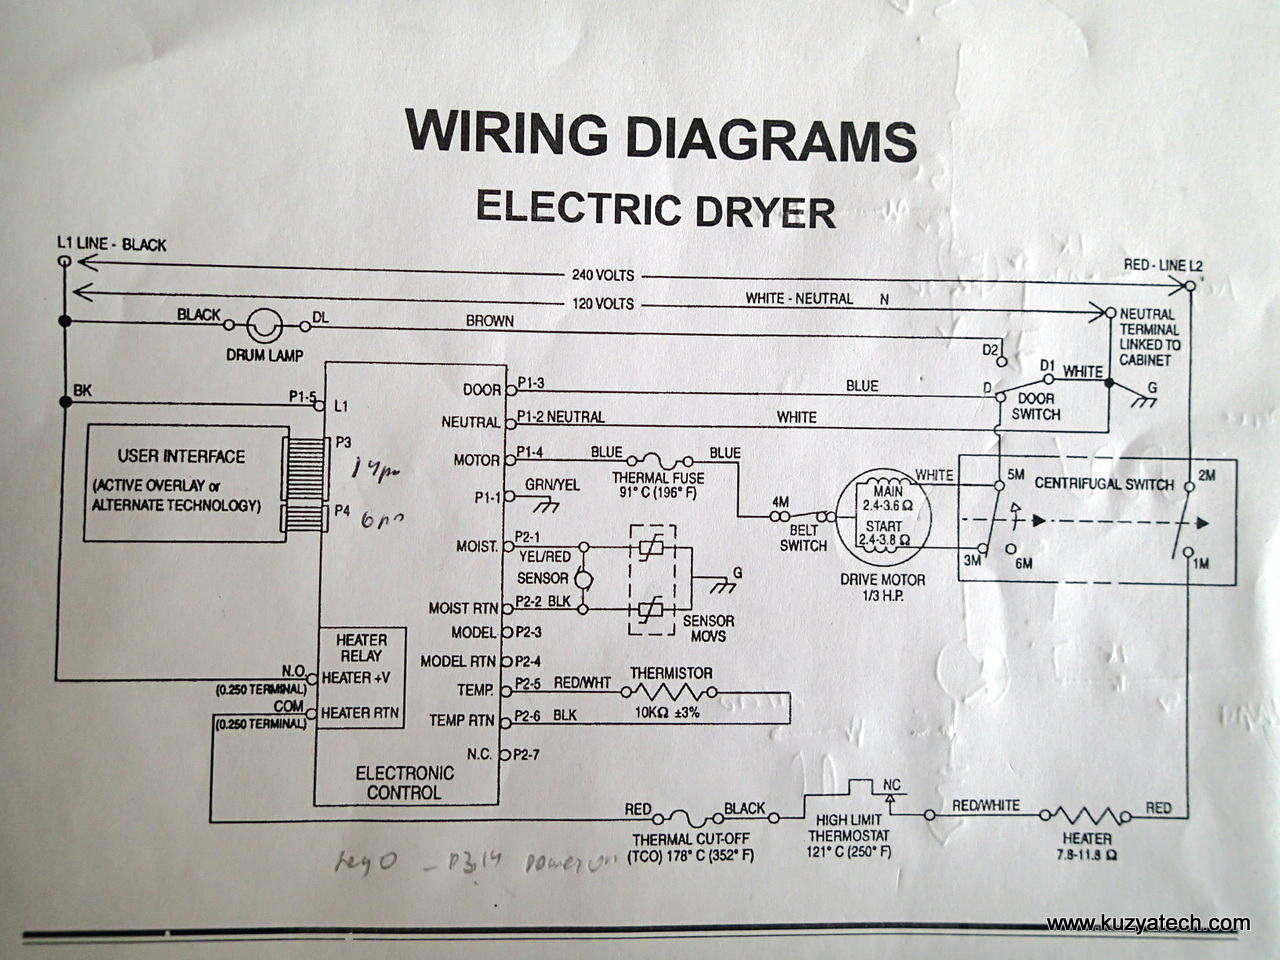 Wiring Diagram For Whirlpool Electric Dryer : Whirlpool duet gew pw resurrection kuzyatech